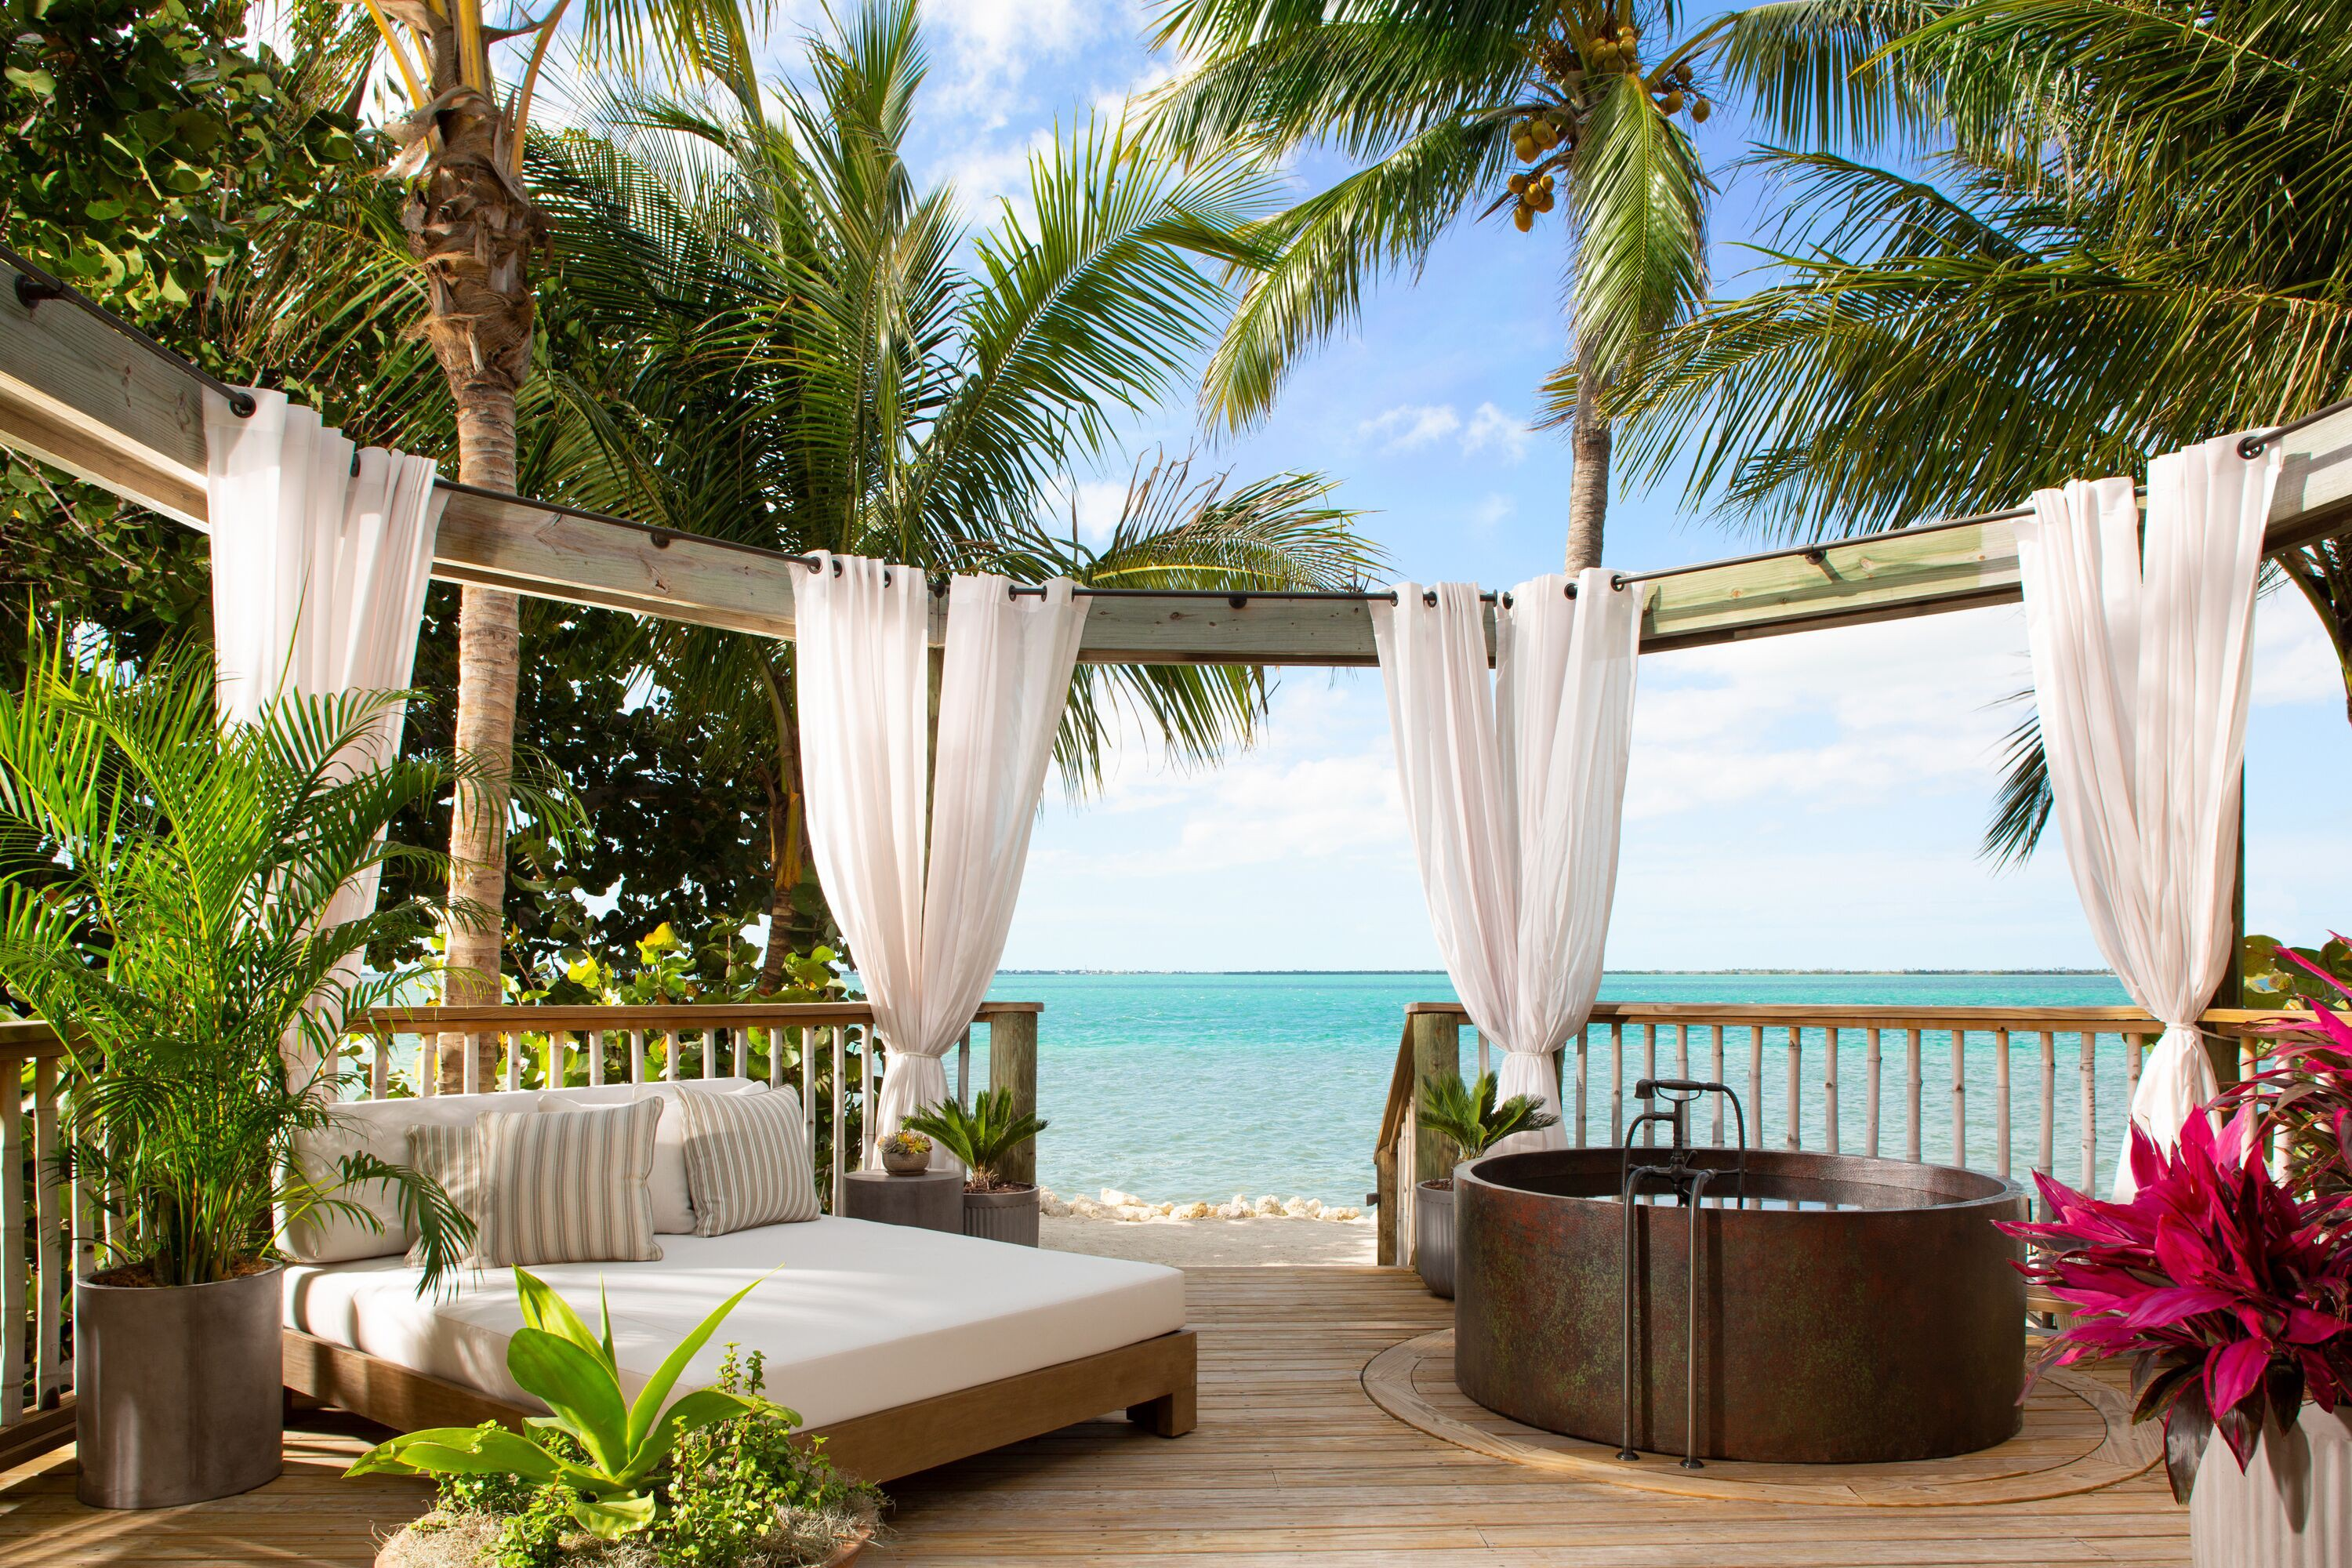 Courtesy of Little Palm Island Resort and Spa / Expedia